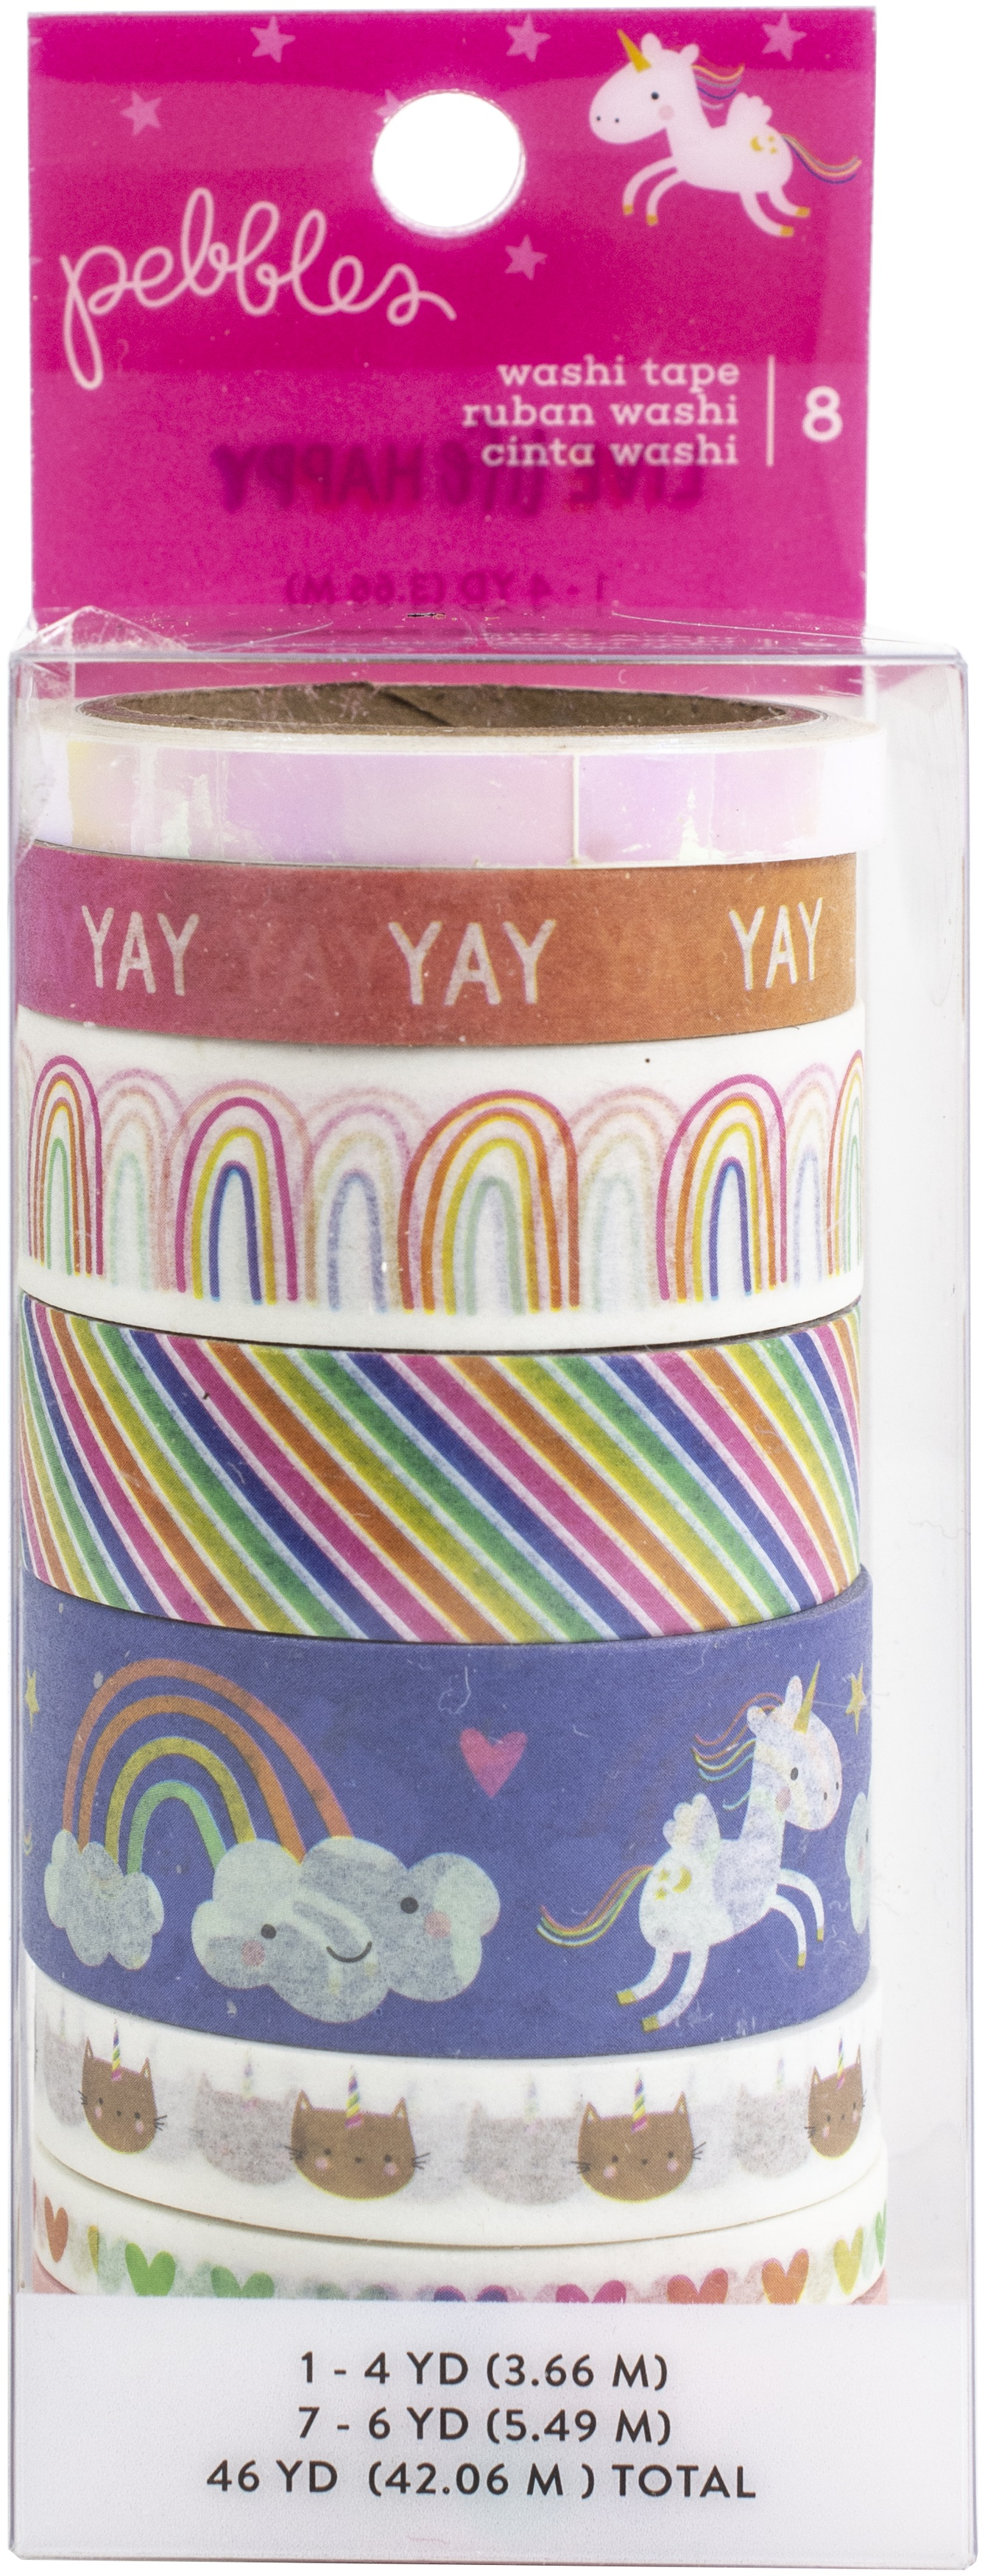 Live Life Happy Washi Tape 8/Pkg-4 To 6 Yards Each